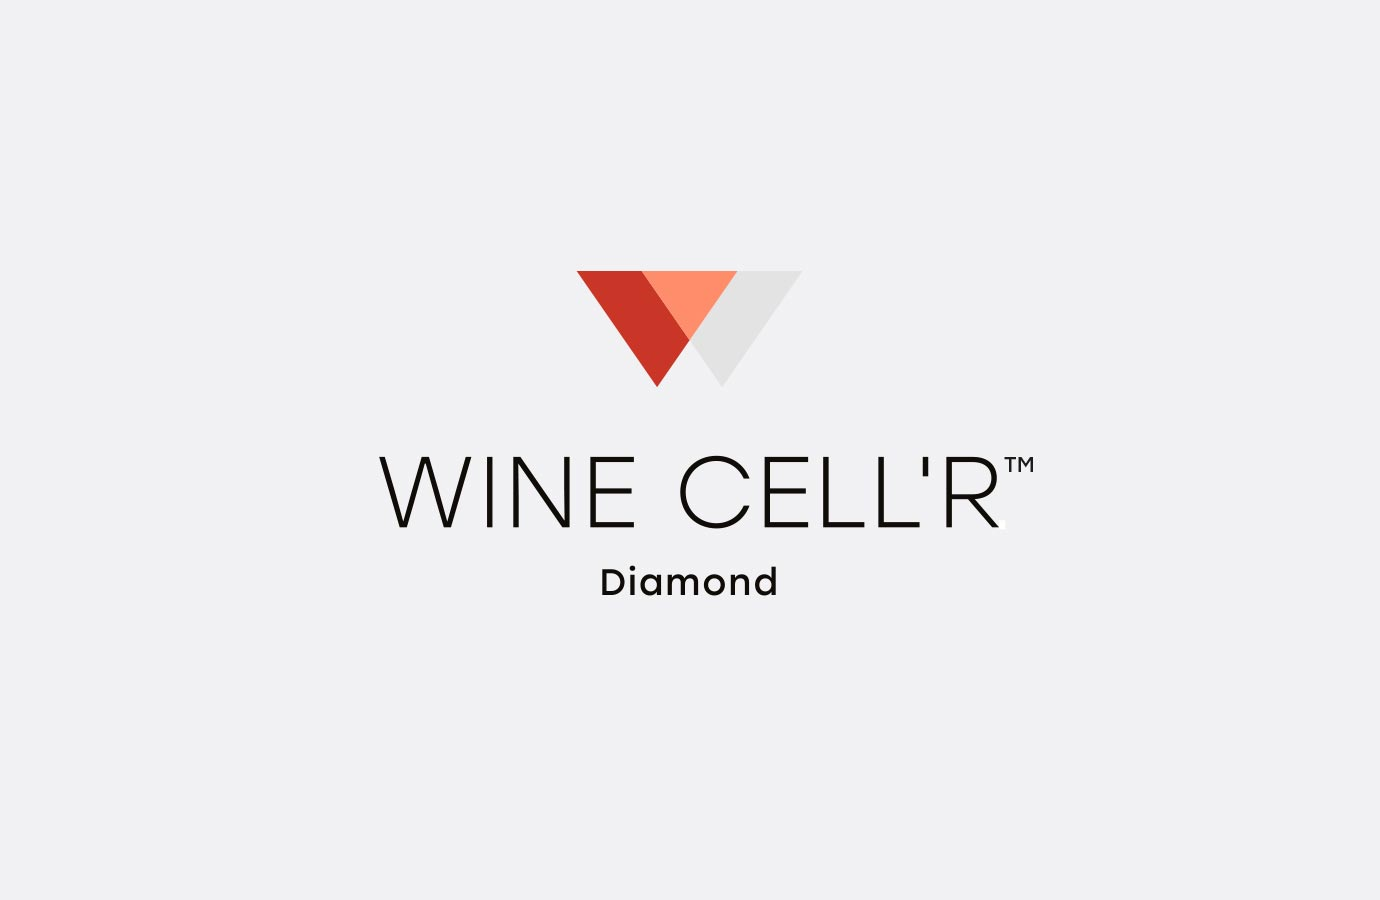 Logotype Wine Cell'r